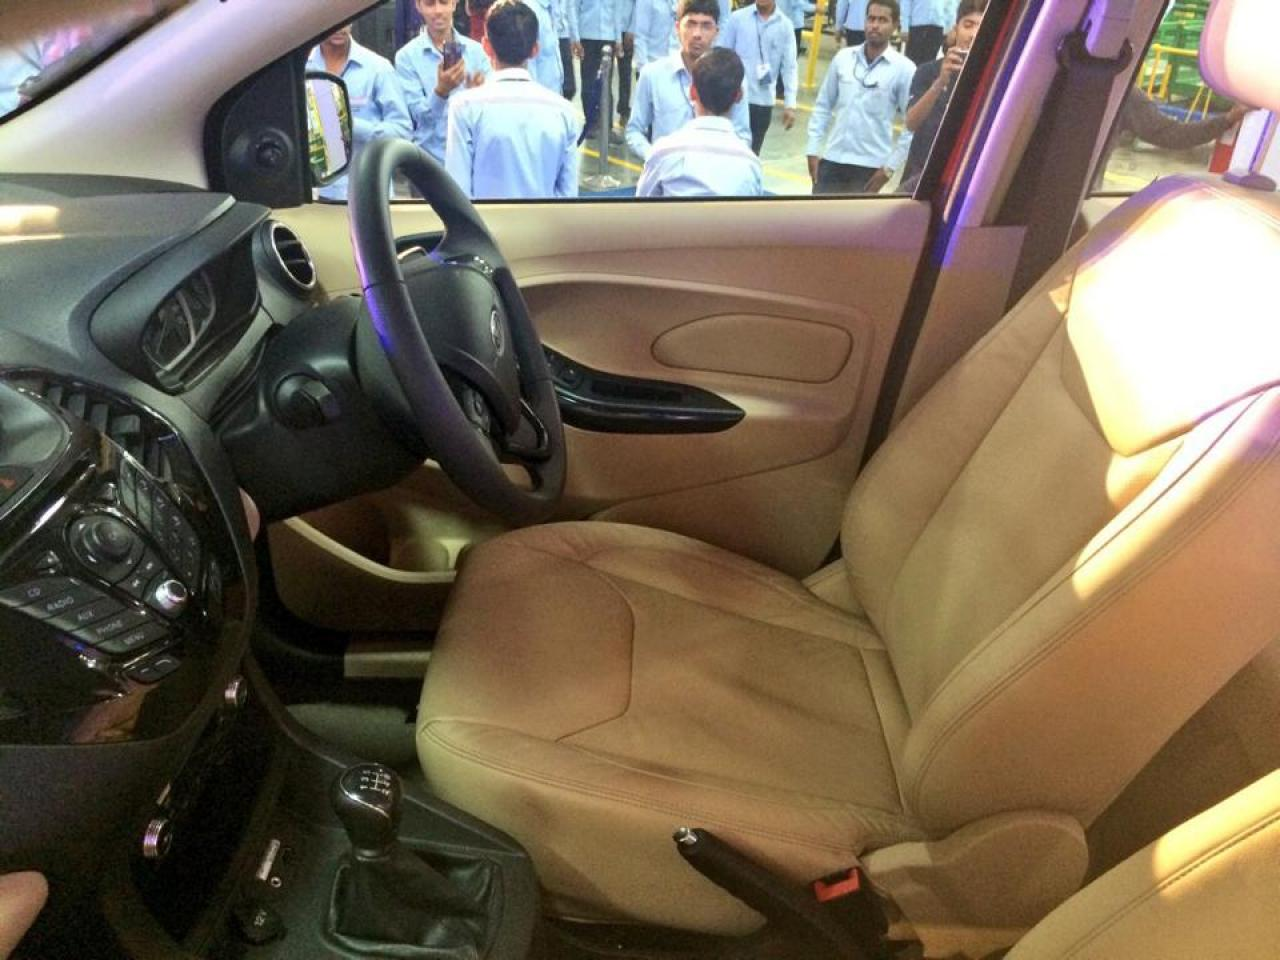 ford figo aspire interior spied reveals good space quality materials motoroids. Black Bedroom Furniture Sets. Home Design Ideas